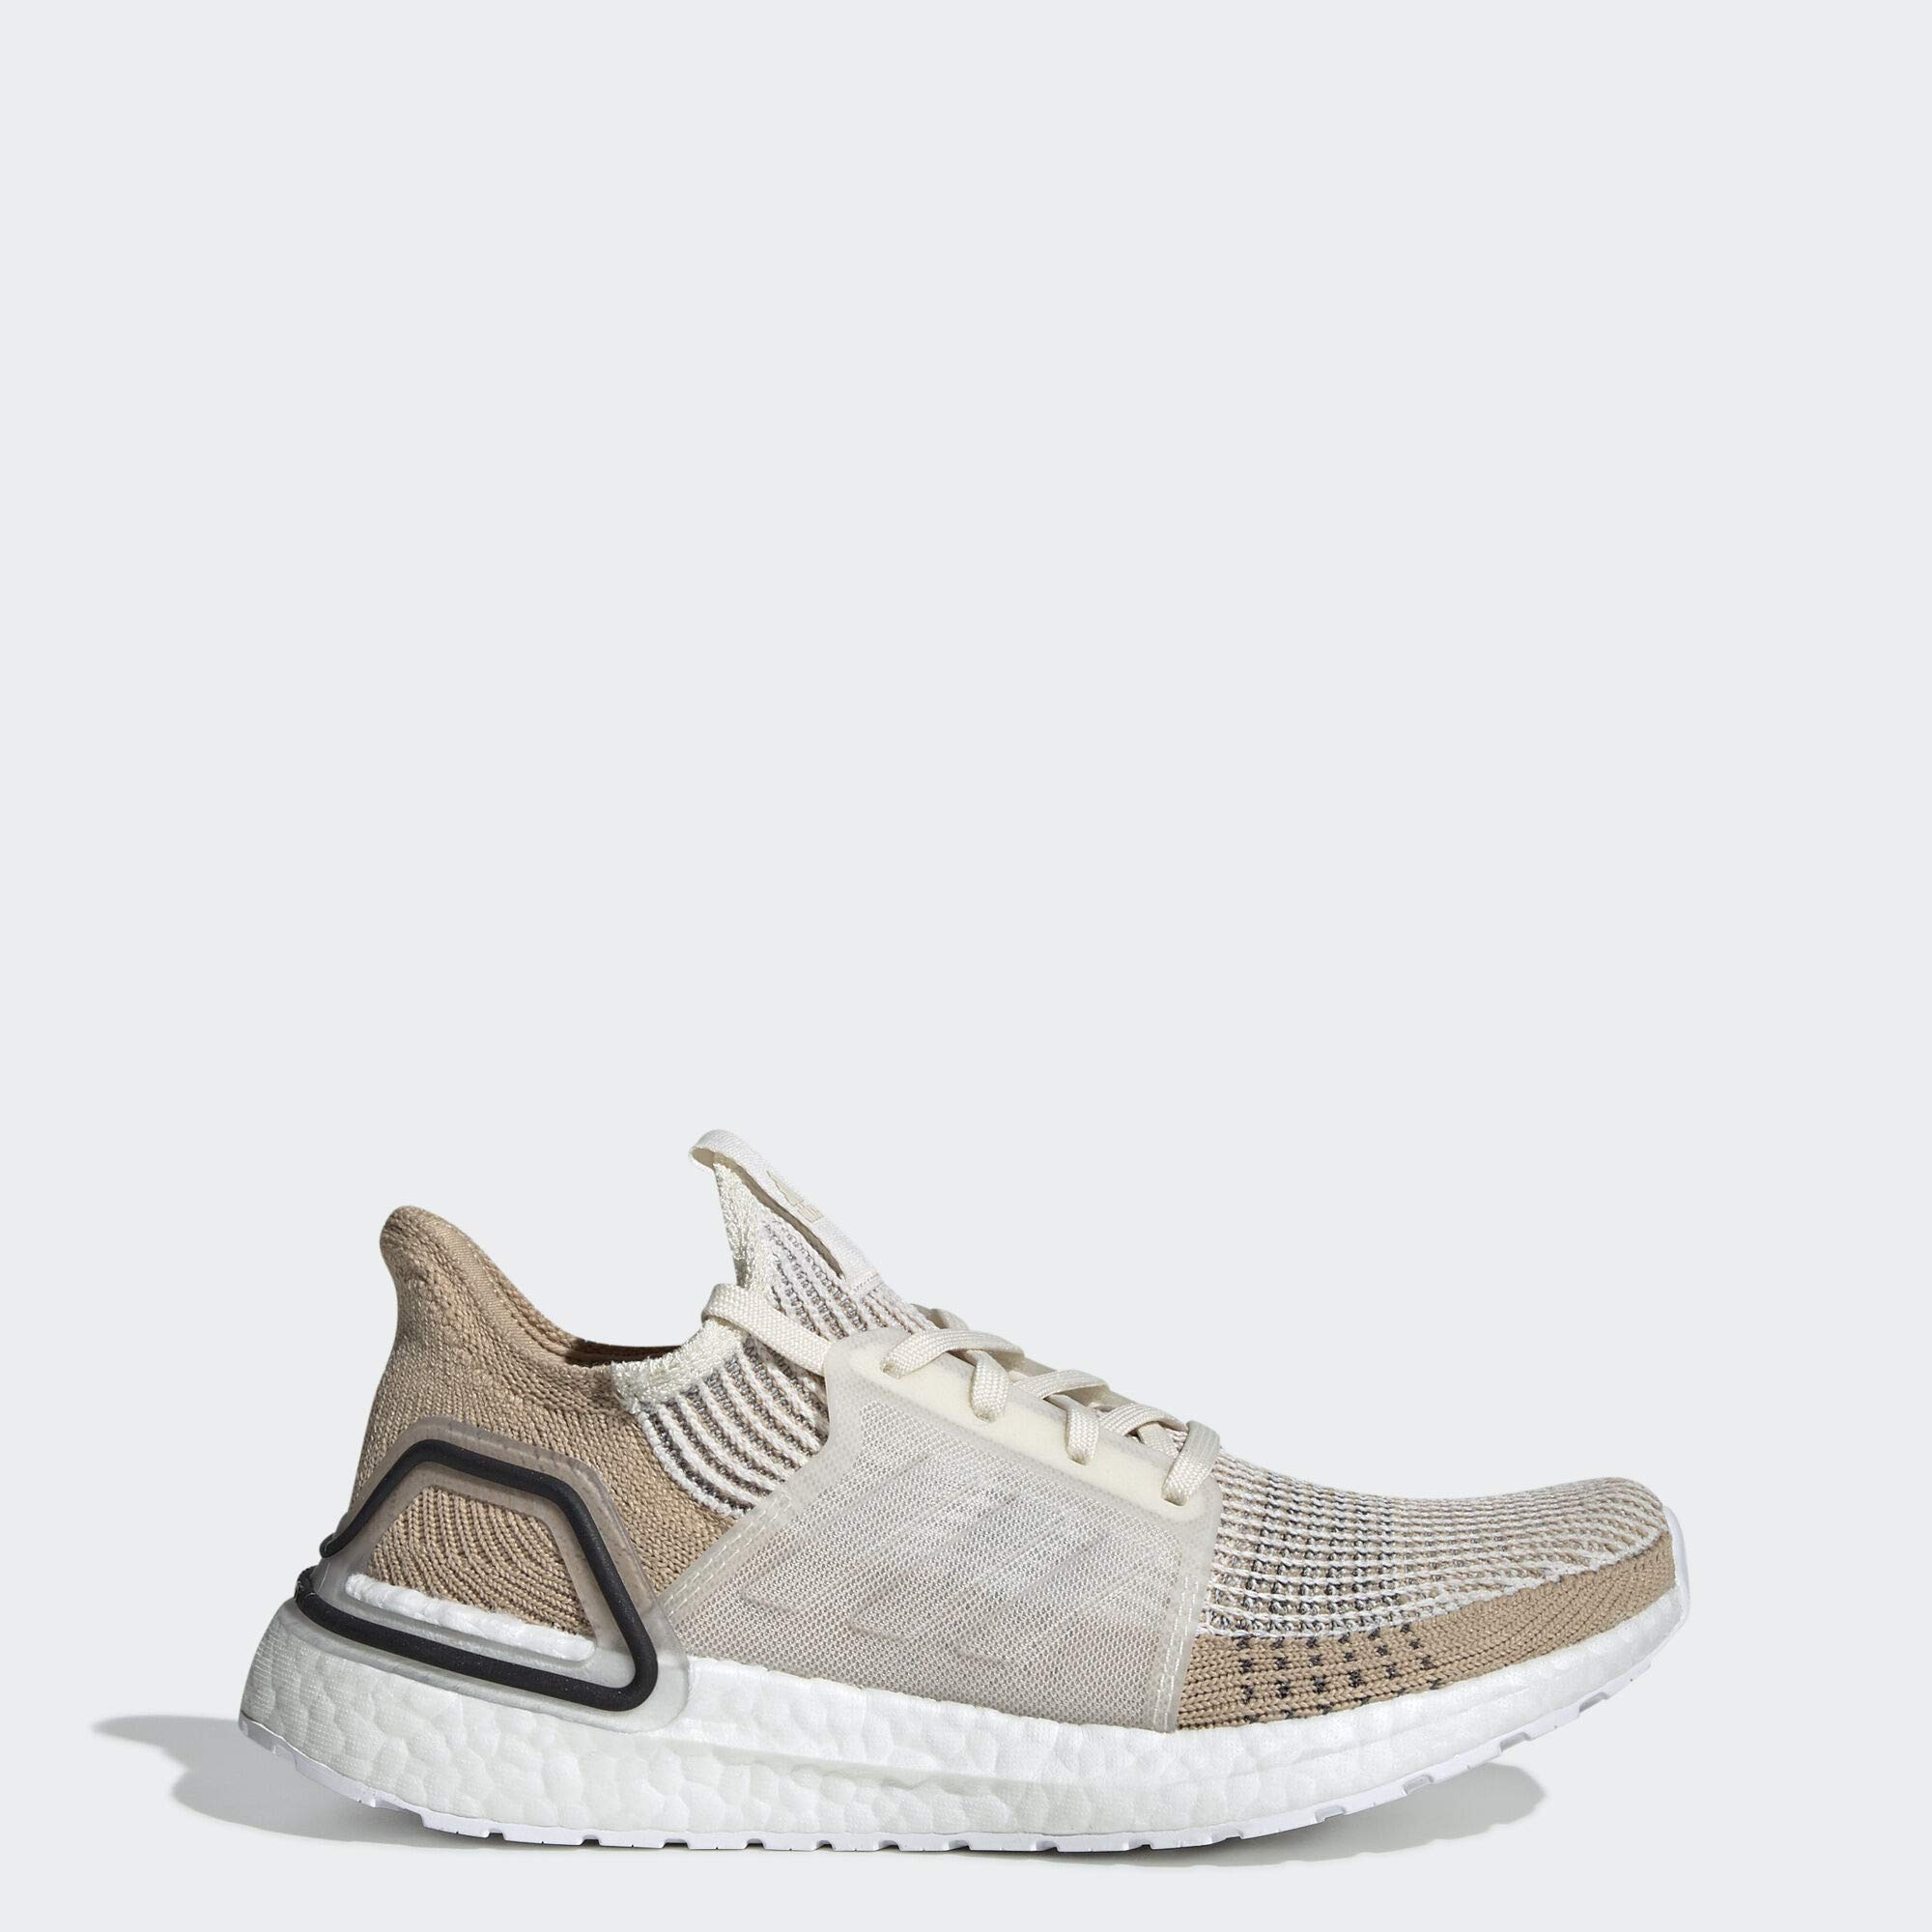 adidas Women's Ultraboost 19, Chalk White/Pale Nude/Black, 8 M US by adidas